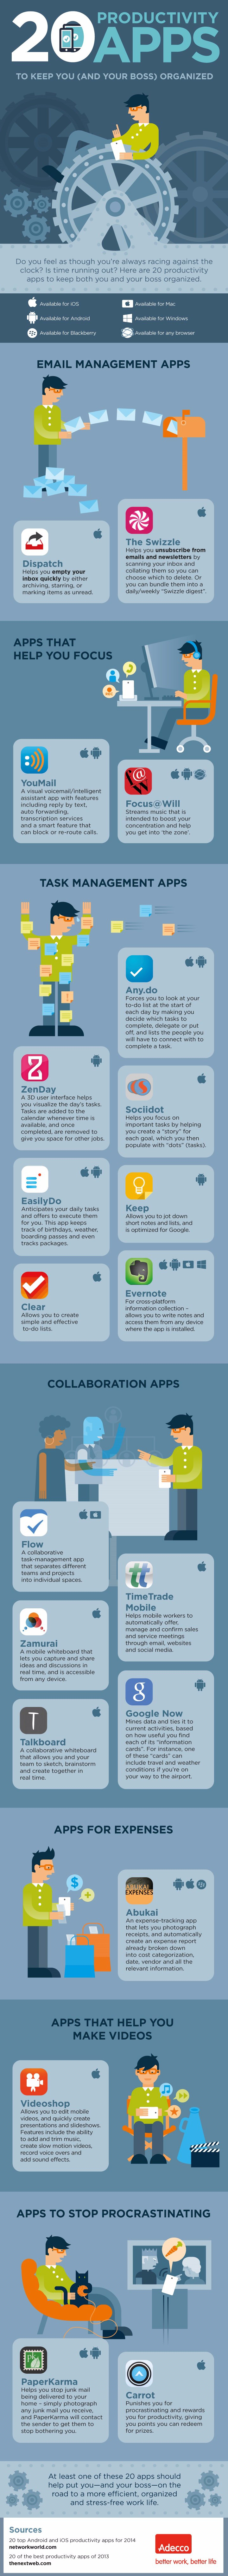 Top 25 Best Productivity Apps for Android, iOS, Windows, Mac, Blackberry